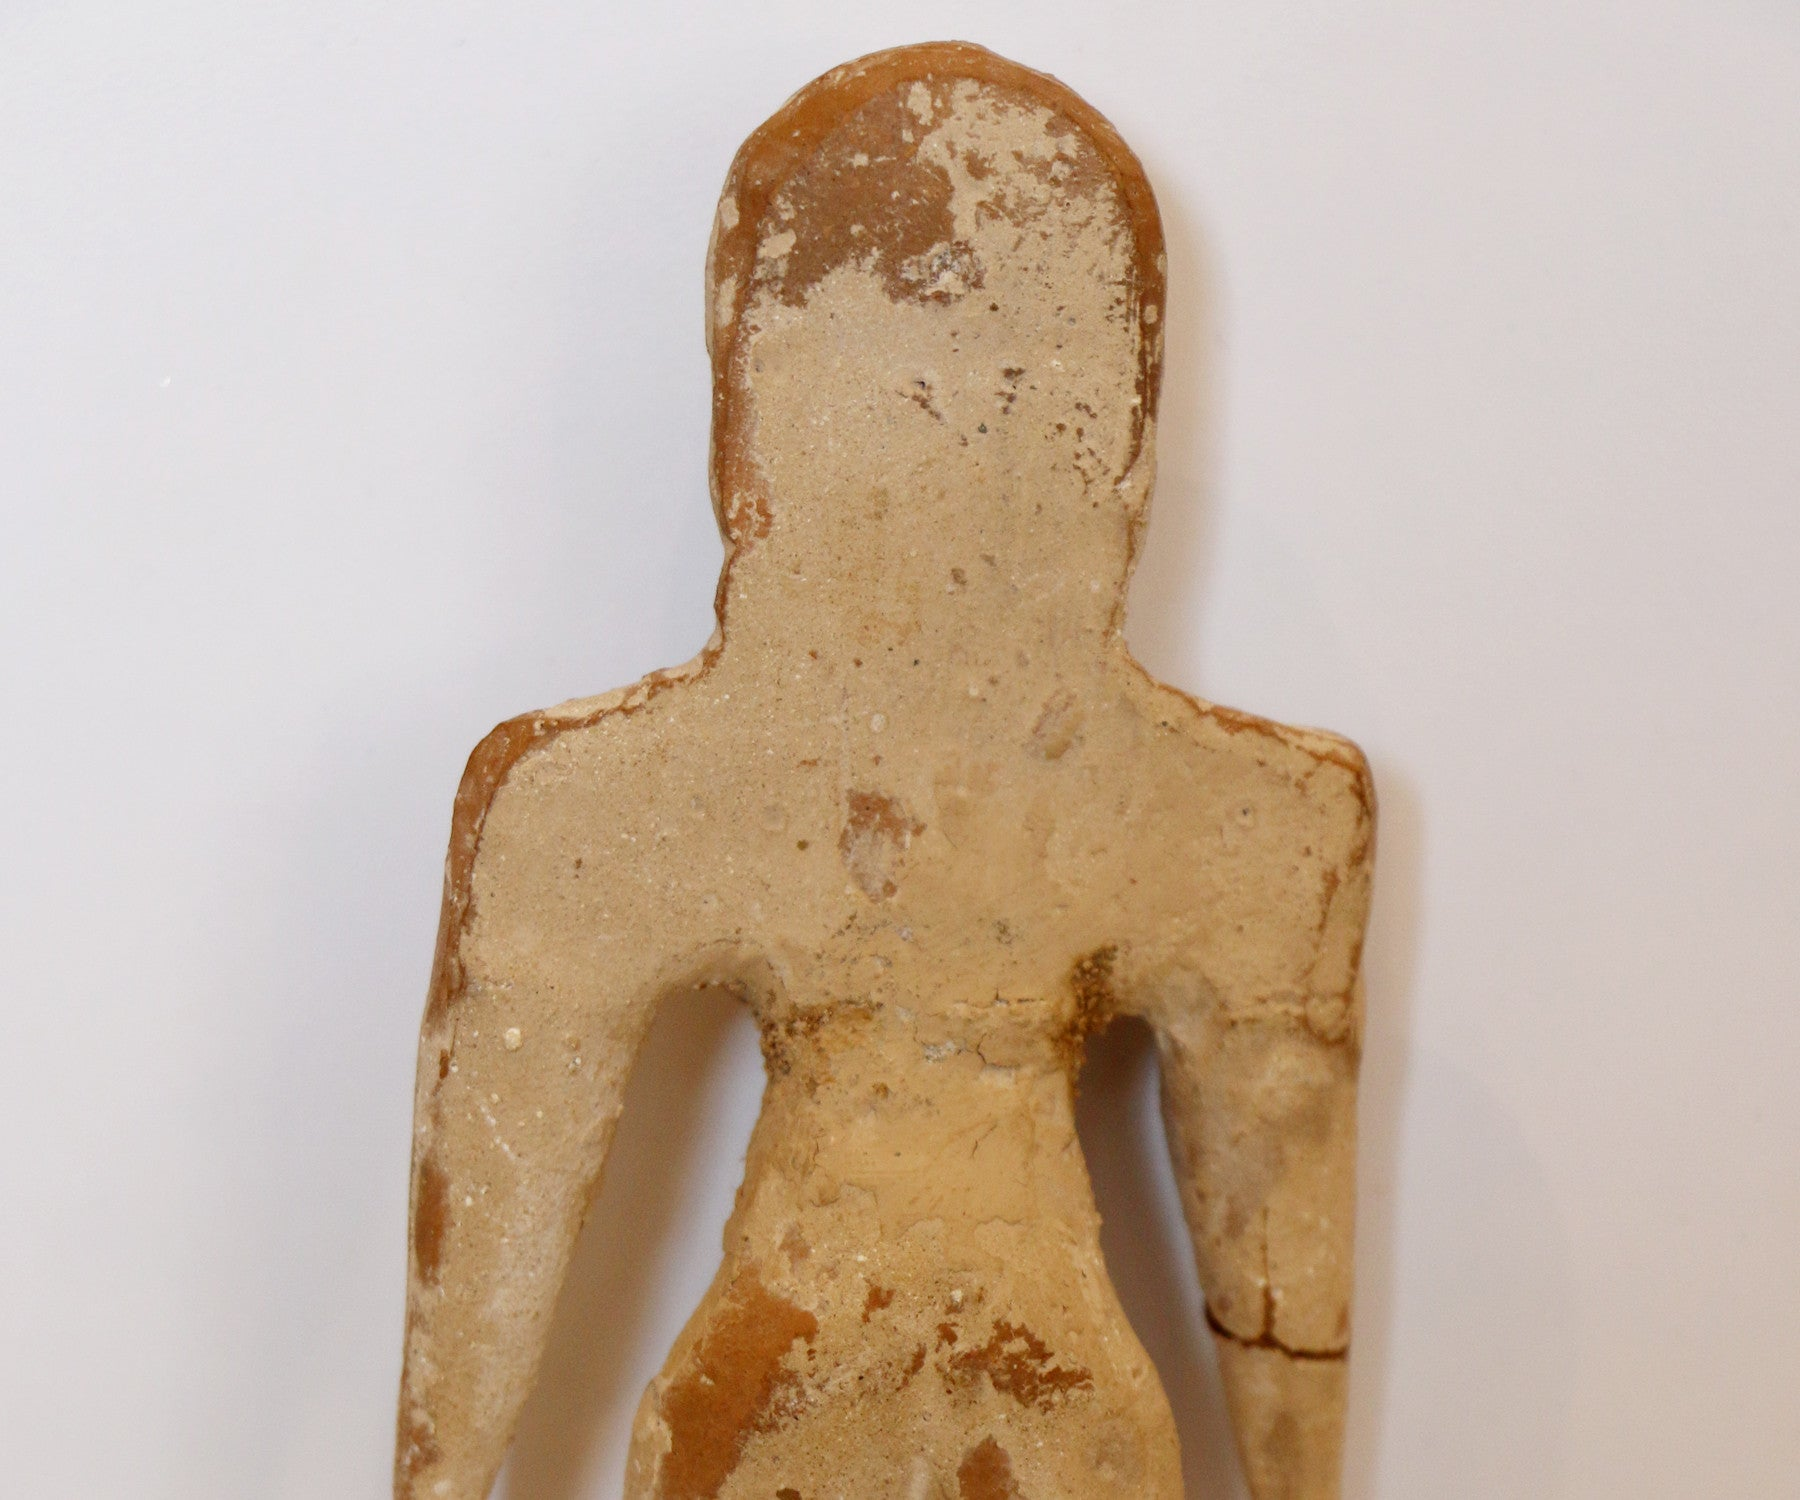 Rare Indus Valley Chalcolithic fertility figure - Tibet Arts & Healing